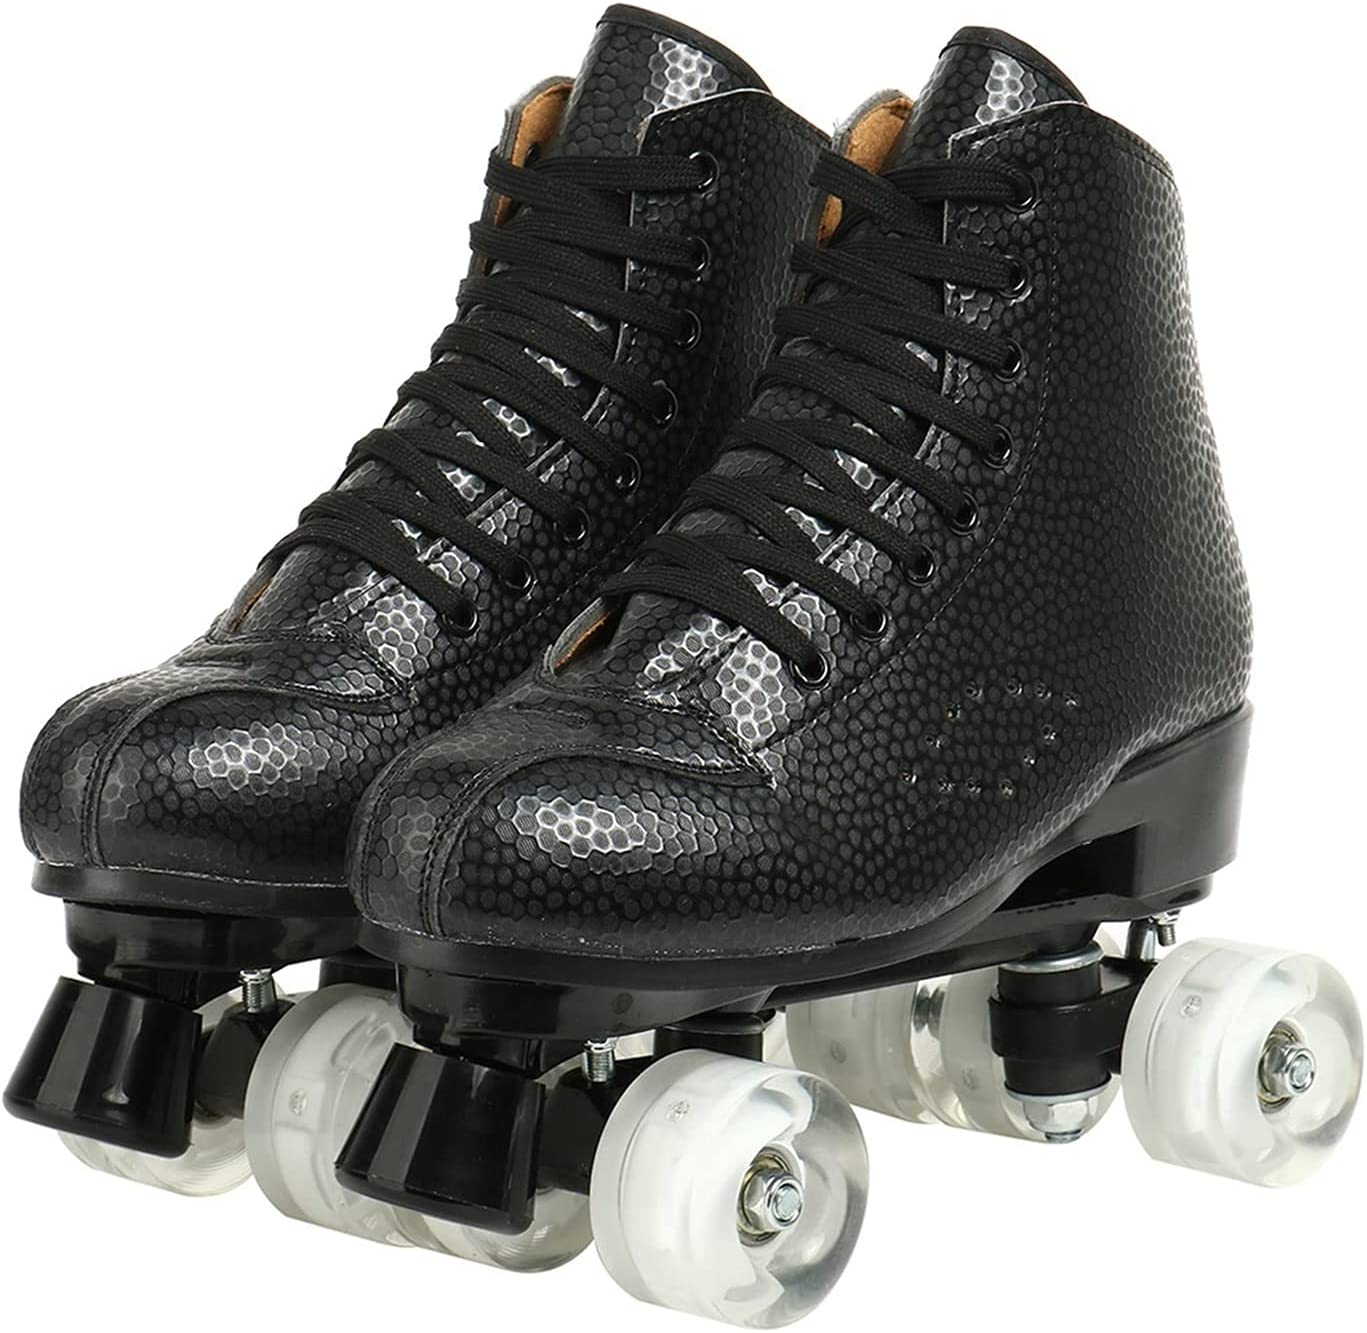 Roller Skates Max 53% OFF for Women Classic PU H Max 82% OFF Leather Double-Row